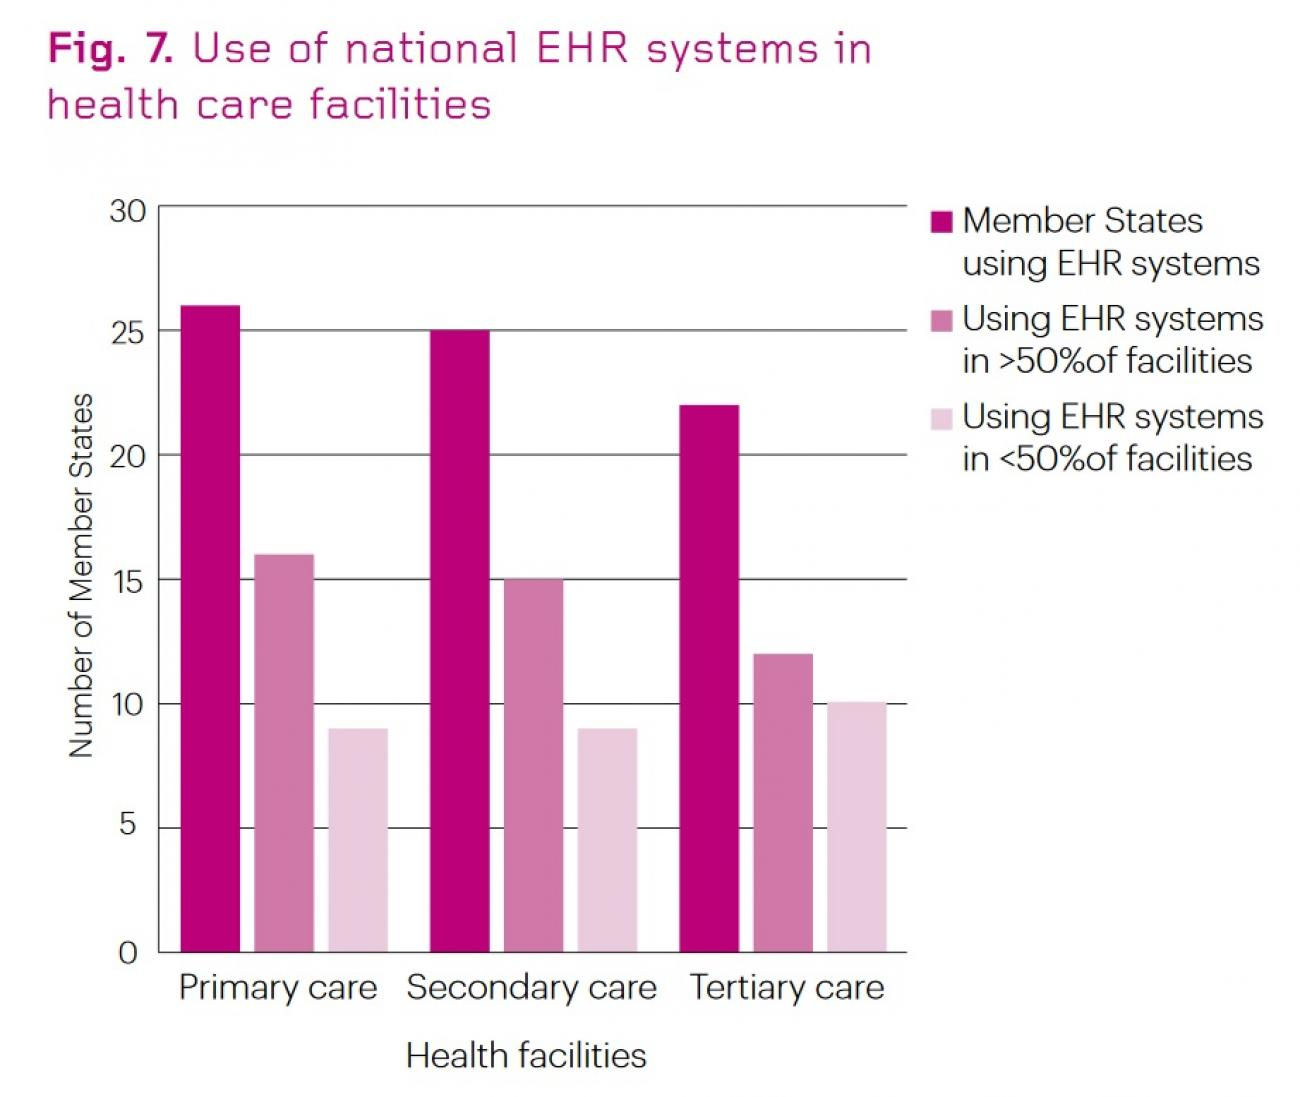 Use_of_national_EHR_systems_in_health_care_facilities_(WHO_2015)